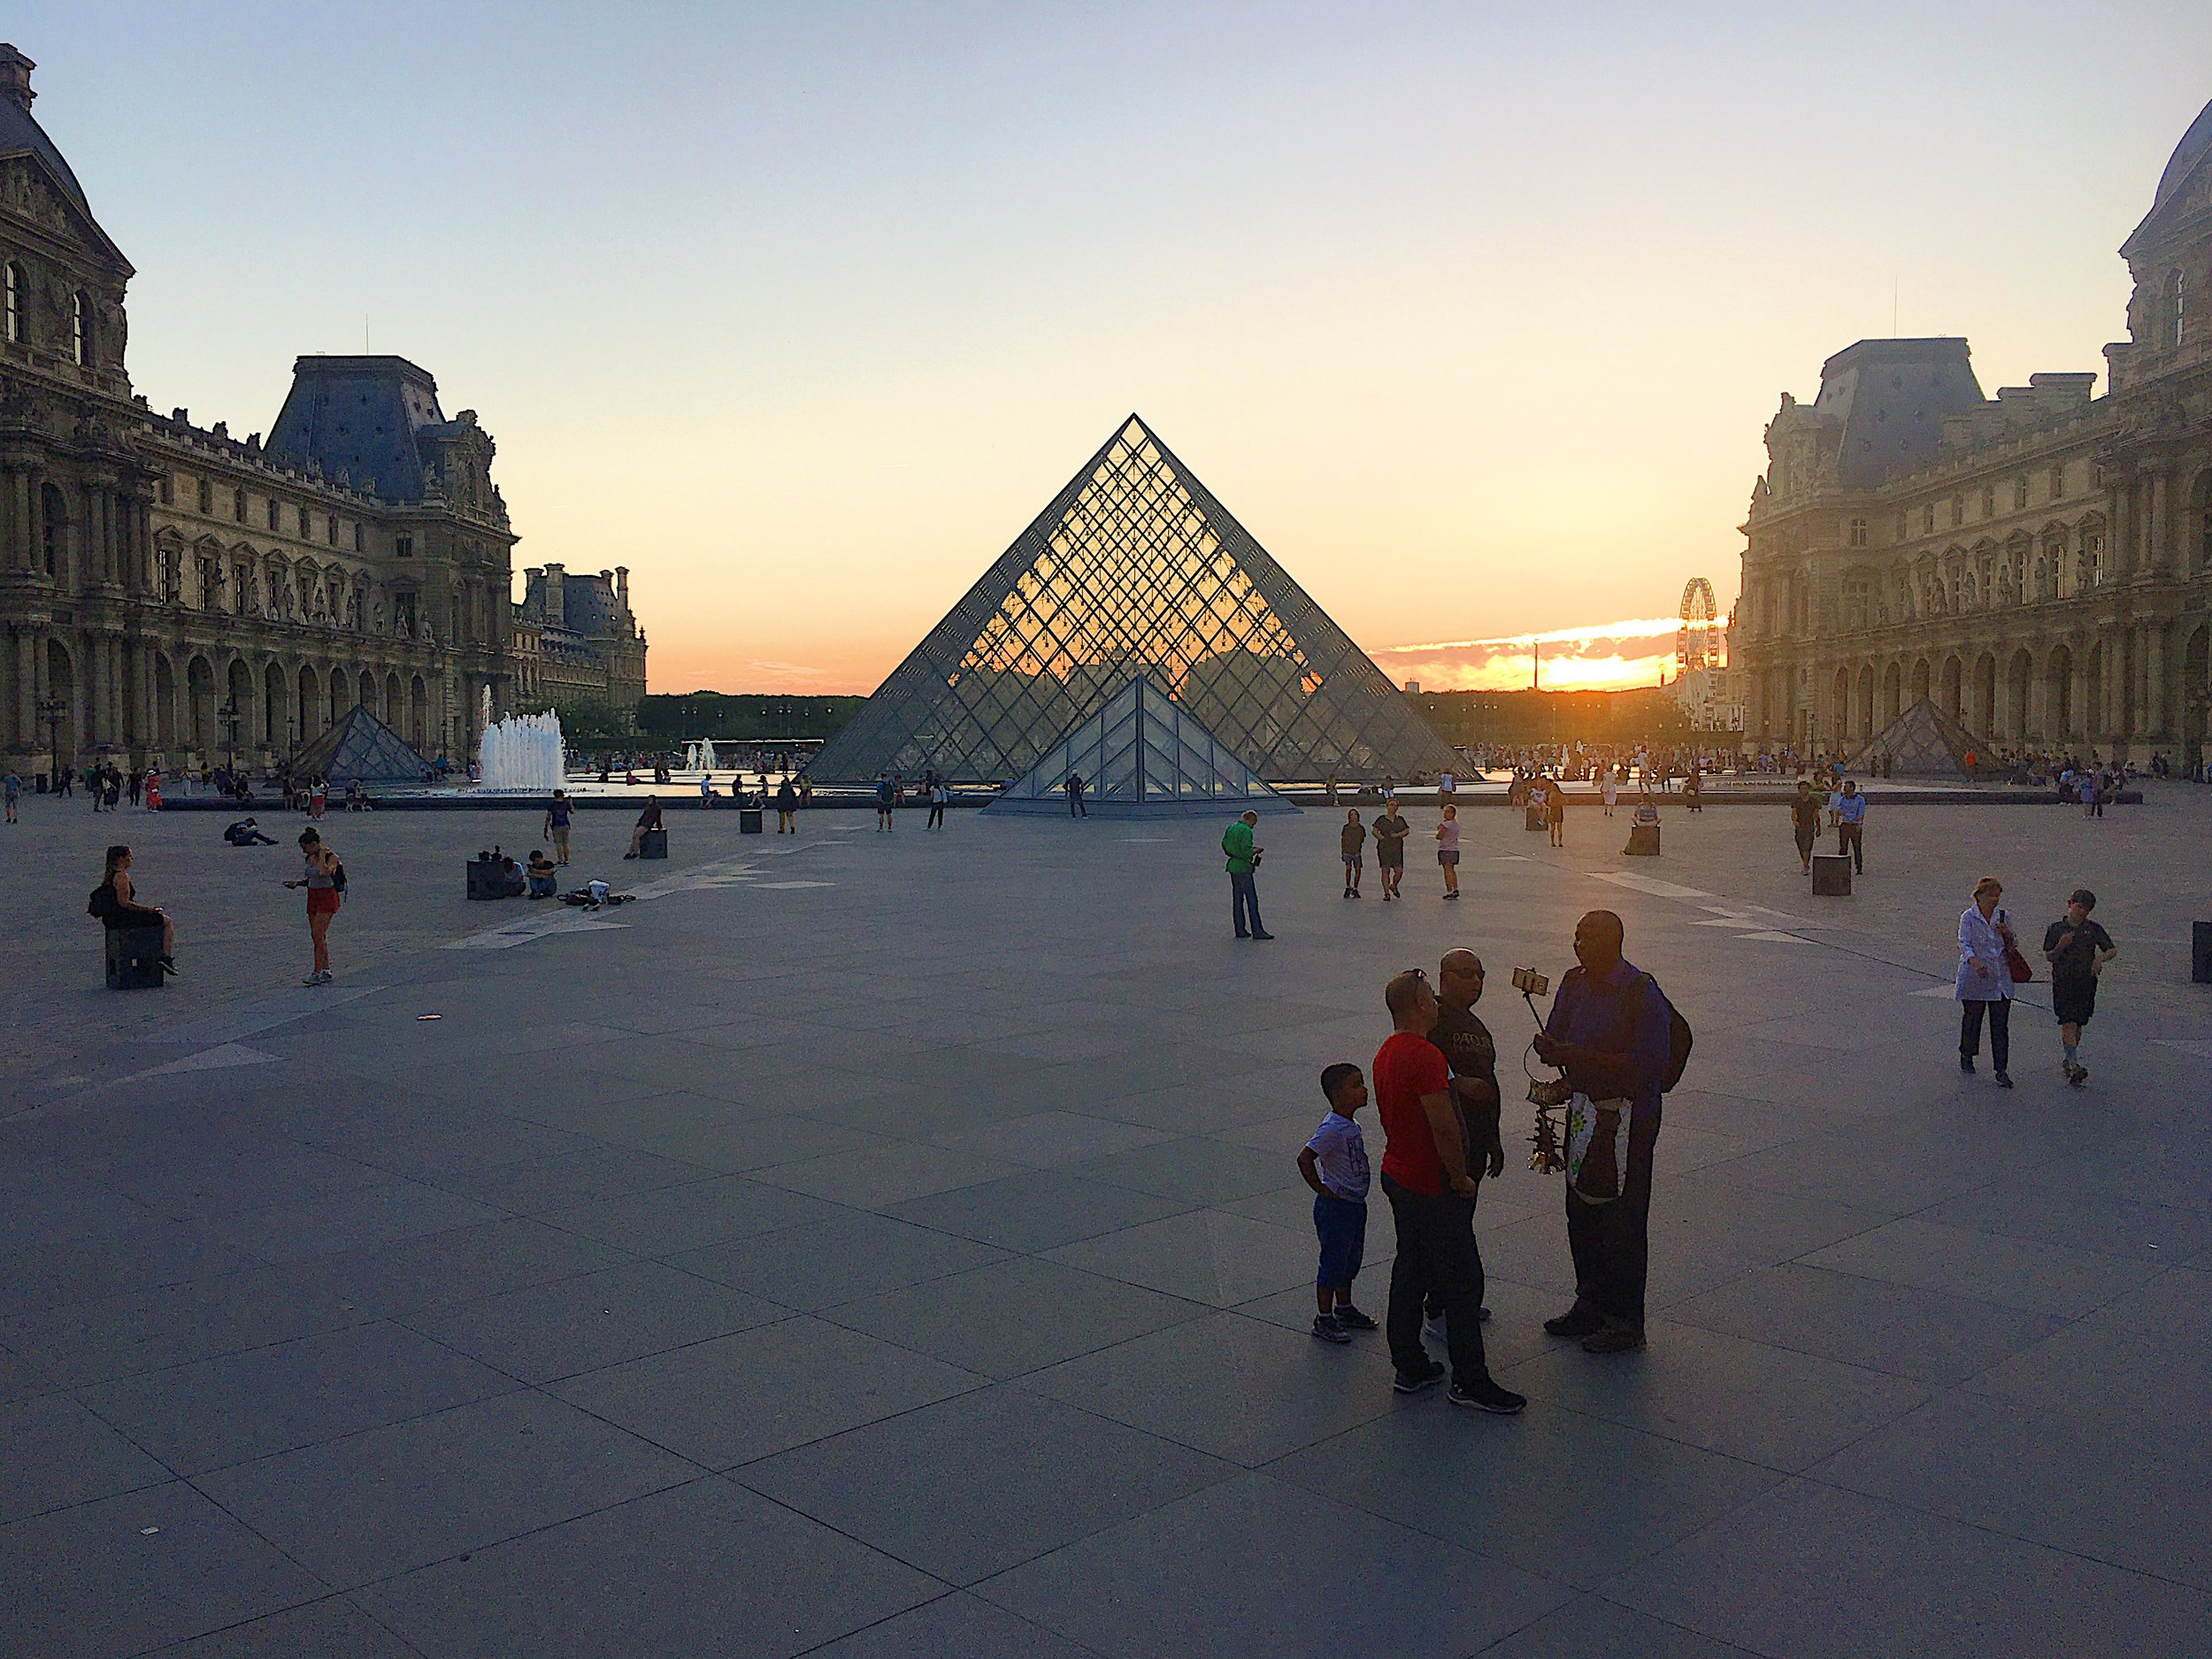 The Cour Carrée du Louvre at sunset. Photo by Jodee Molina.